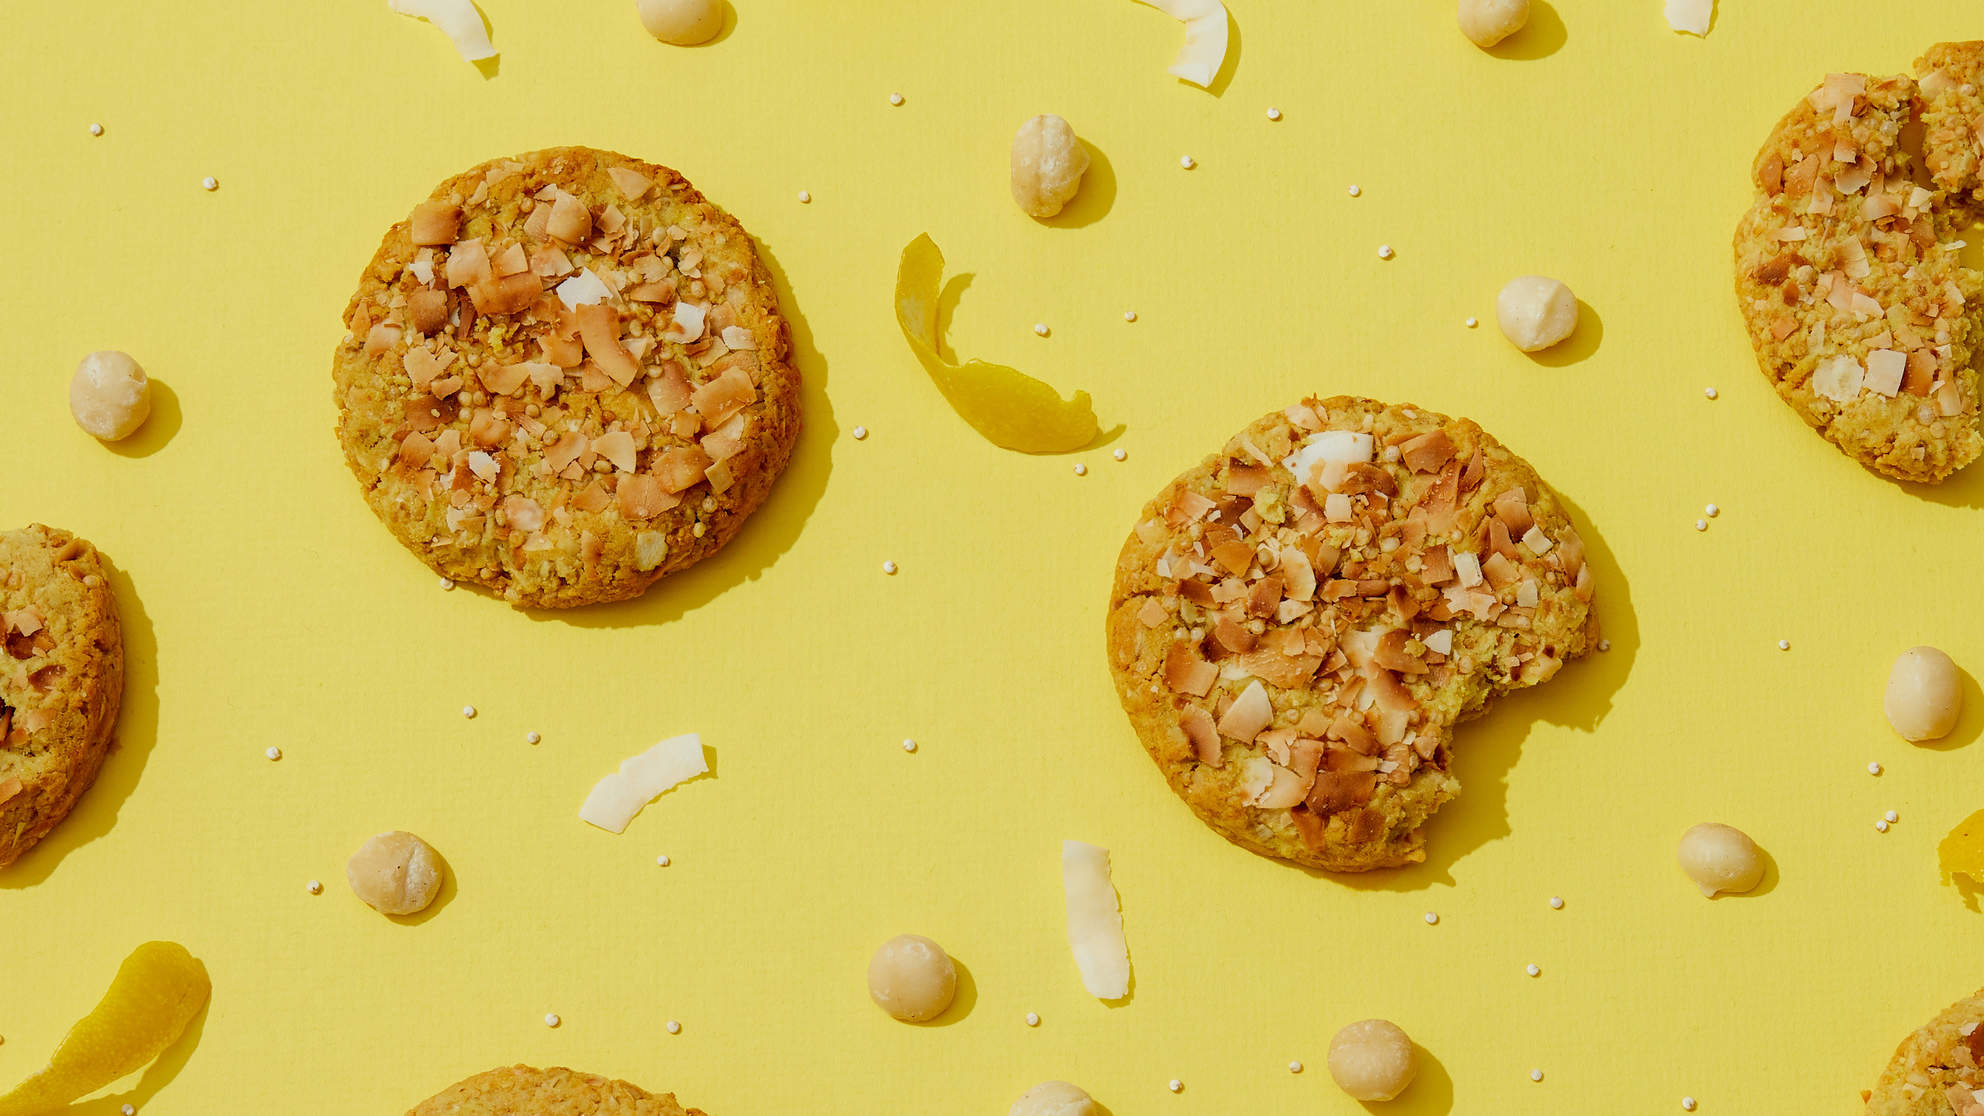 SoulCycle and Milk Bar Just Launched a 'Power Cookie'—Here's What a Nutritionist Thinks